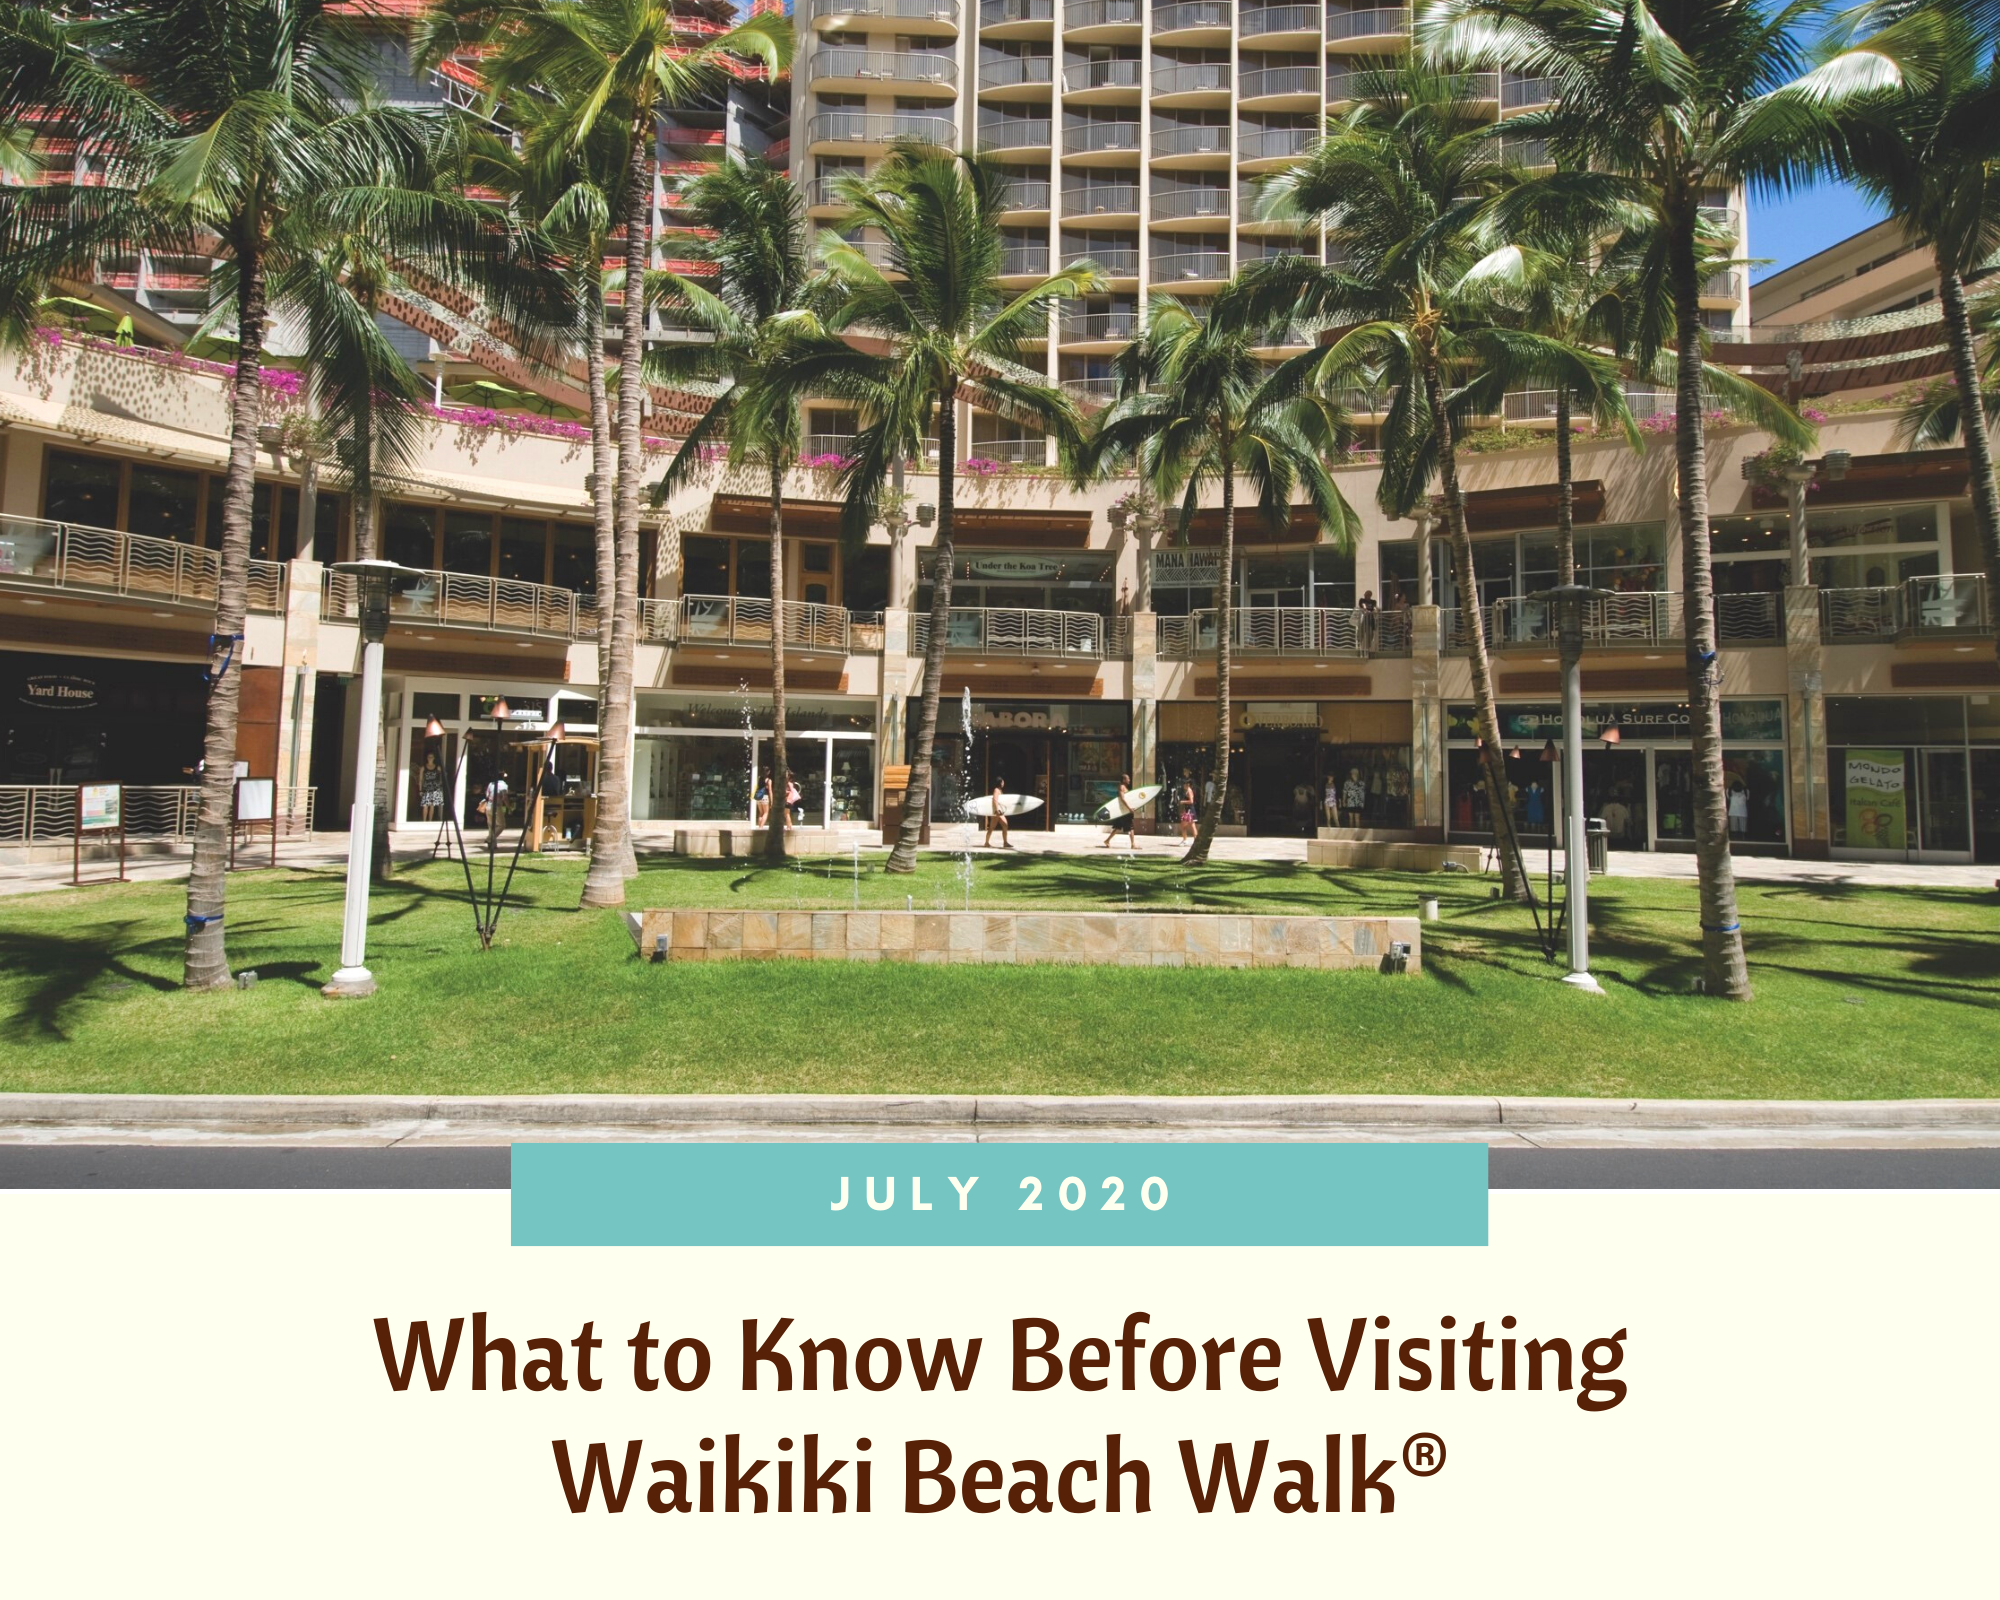 July 2020: What to Know Before Visiting Waikiki Beach Walk®